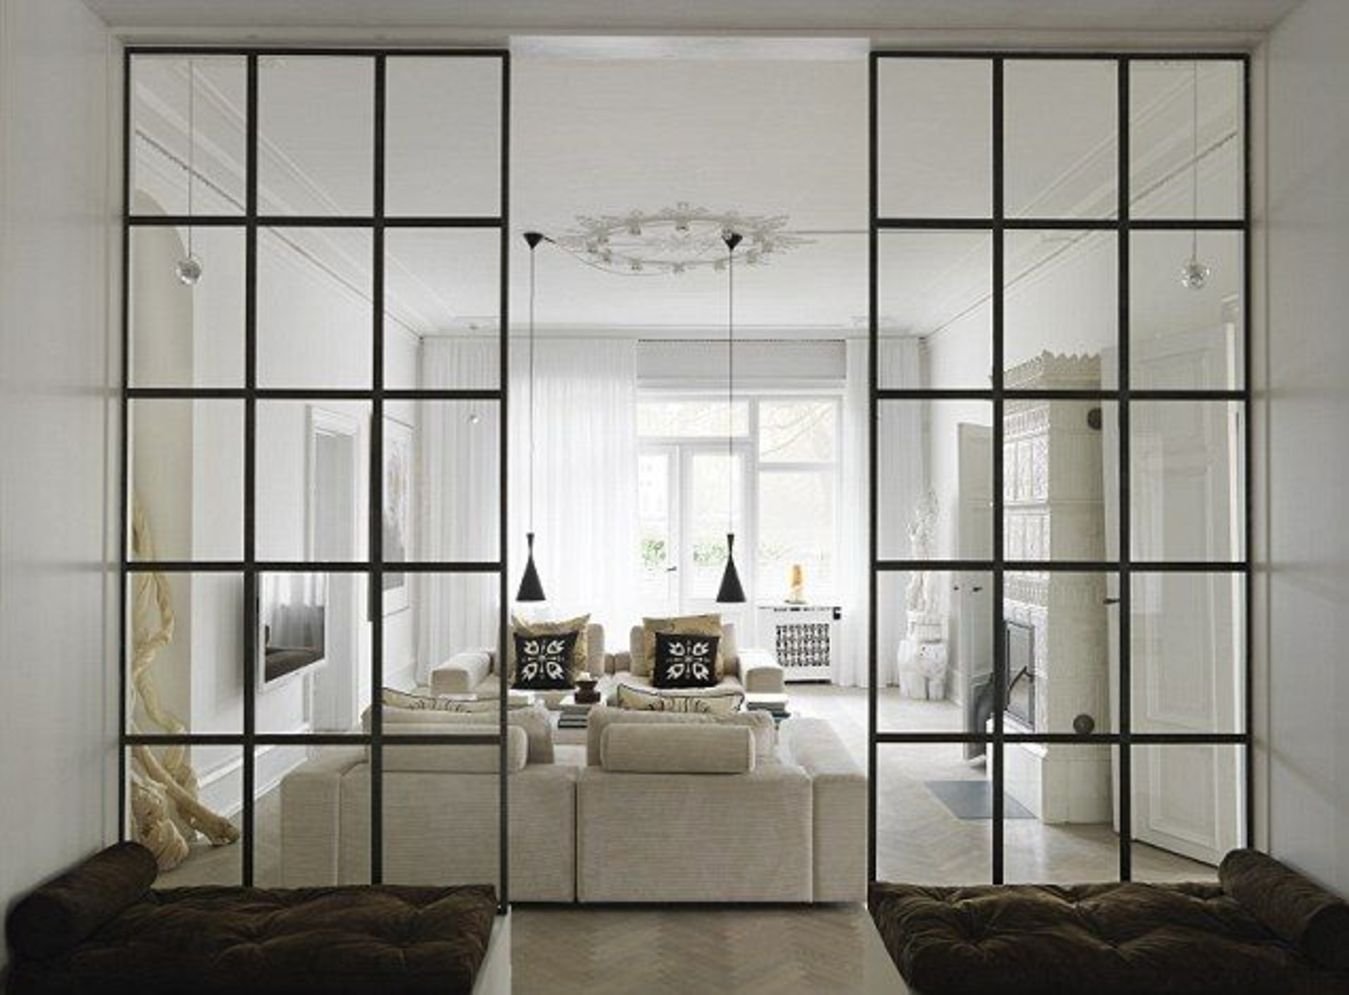 Limitless interior schemes with clever glass partition enlarging wide interior vibes Image 24